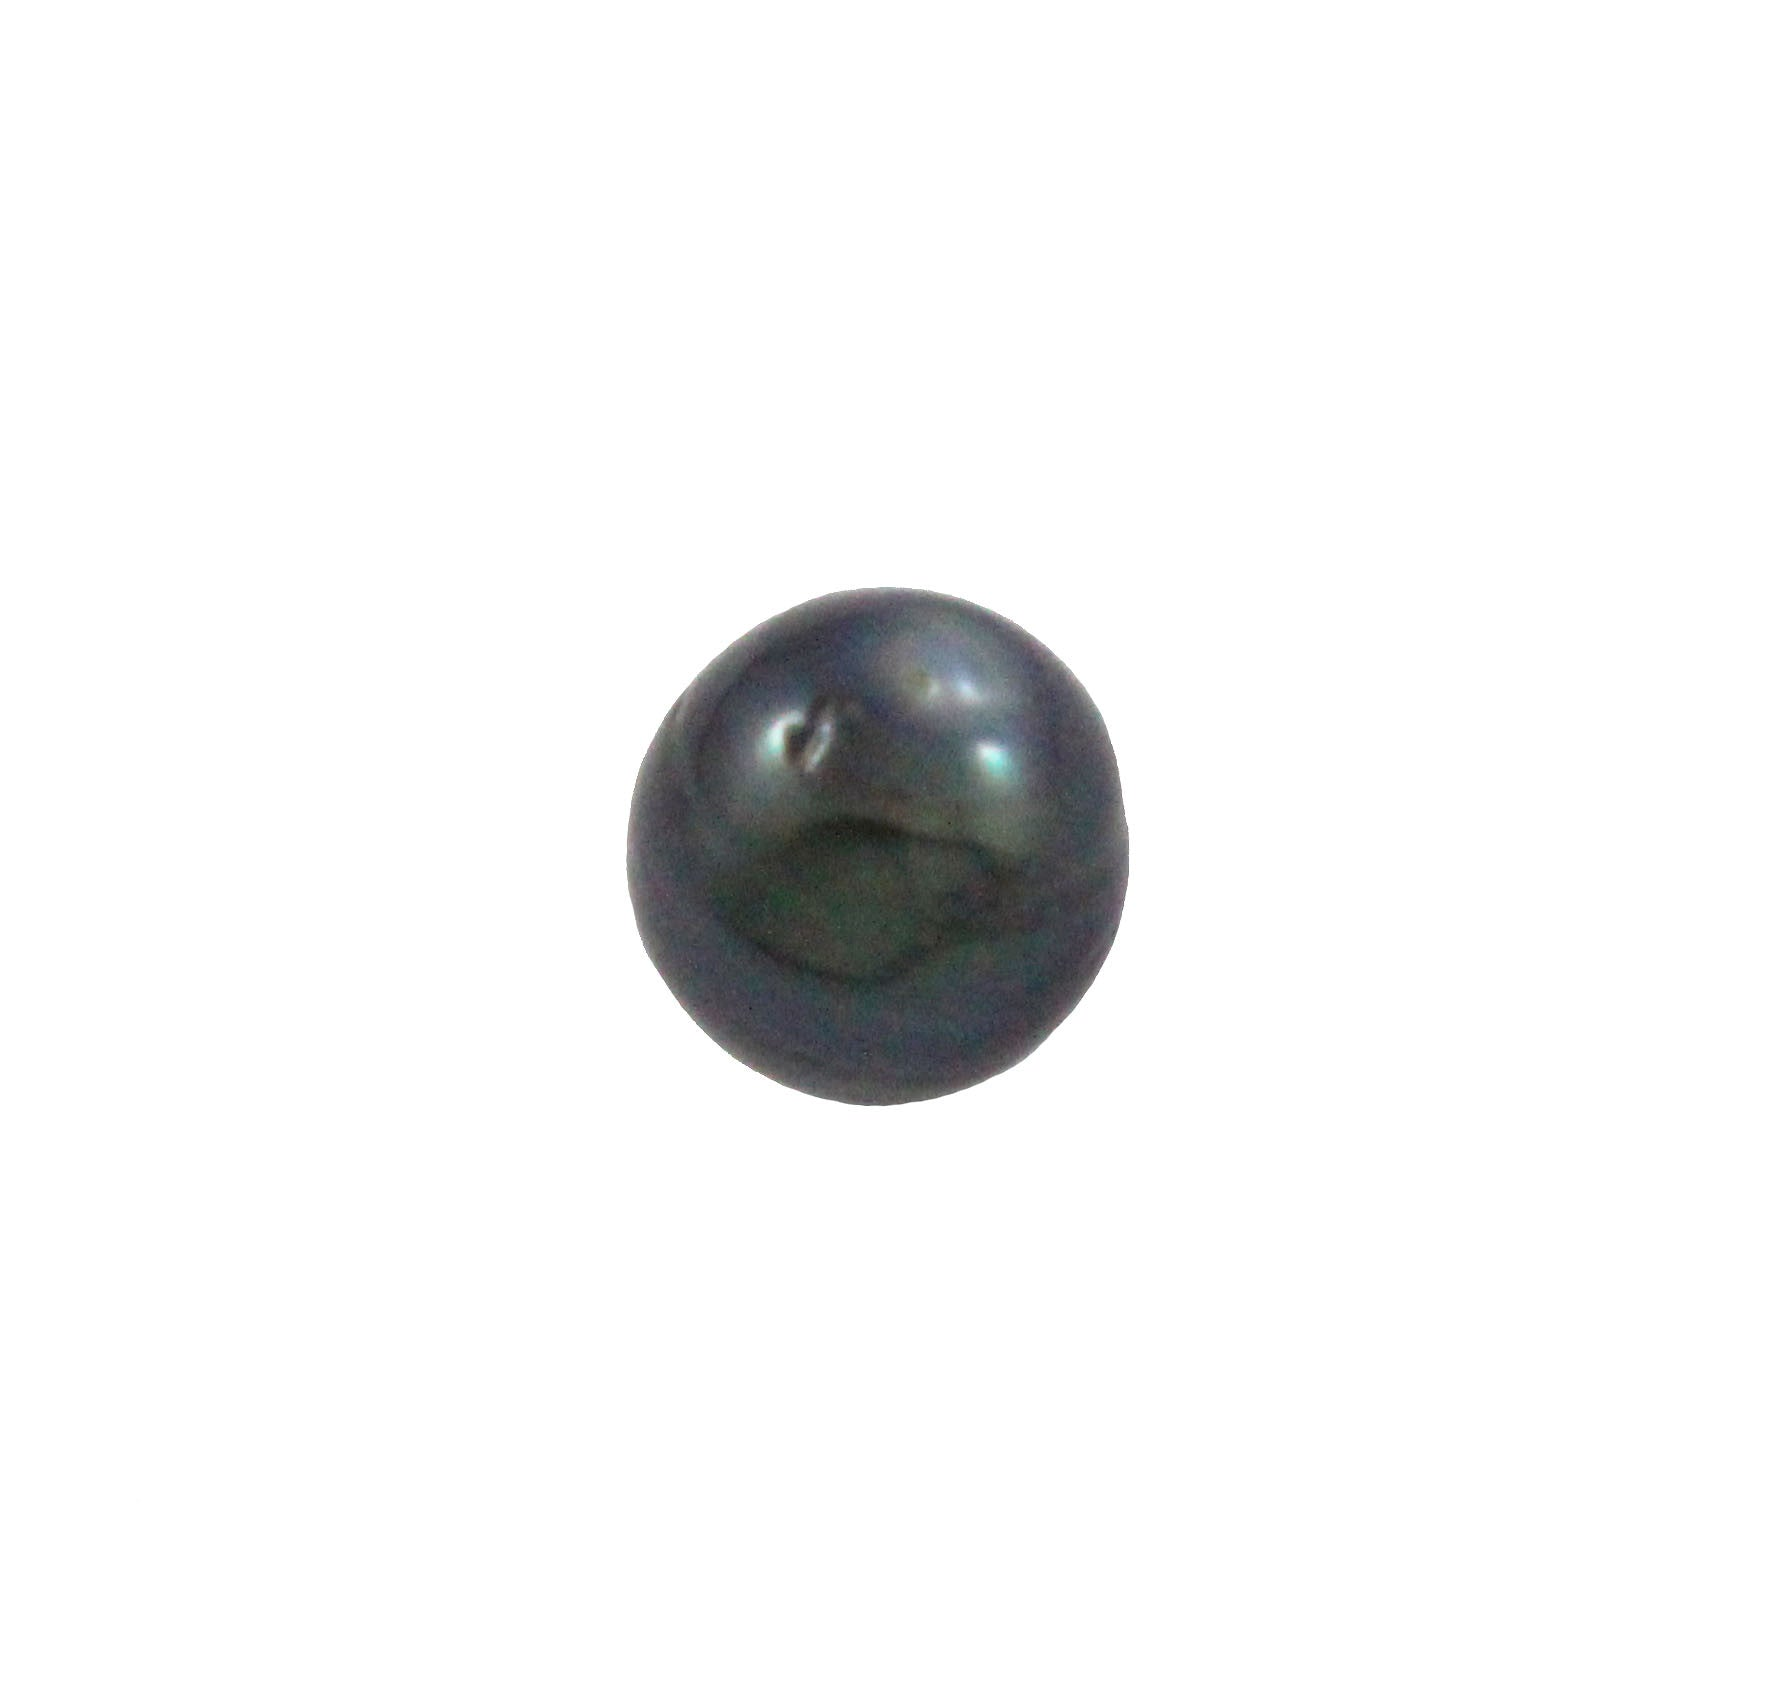 Tahitian pearl undrilled 1.05gr mm 9.18x8.85mm - Purchase only with custom order - Sarah Hughes - 5